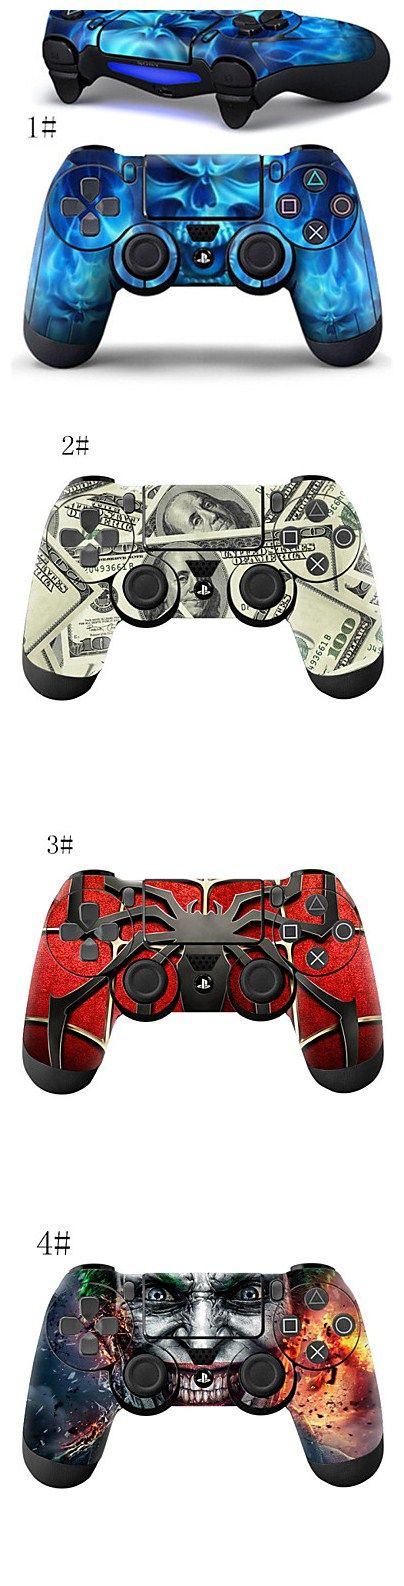 Style Wrap Skin Fits for Sony PS4 Dualshock 4 Controller